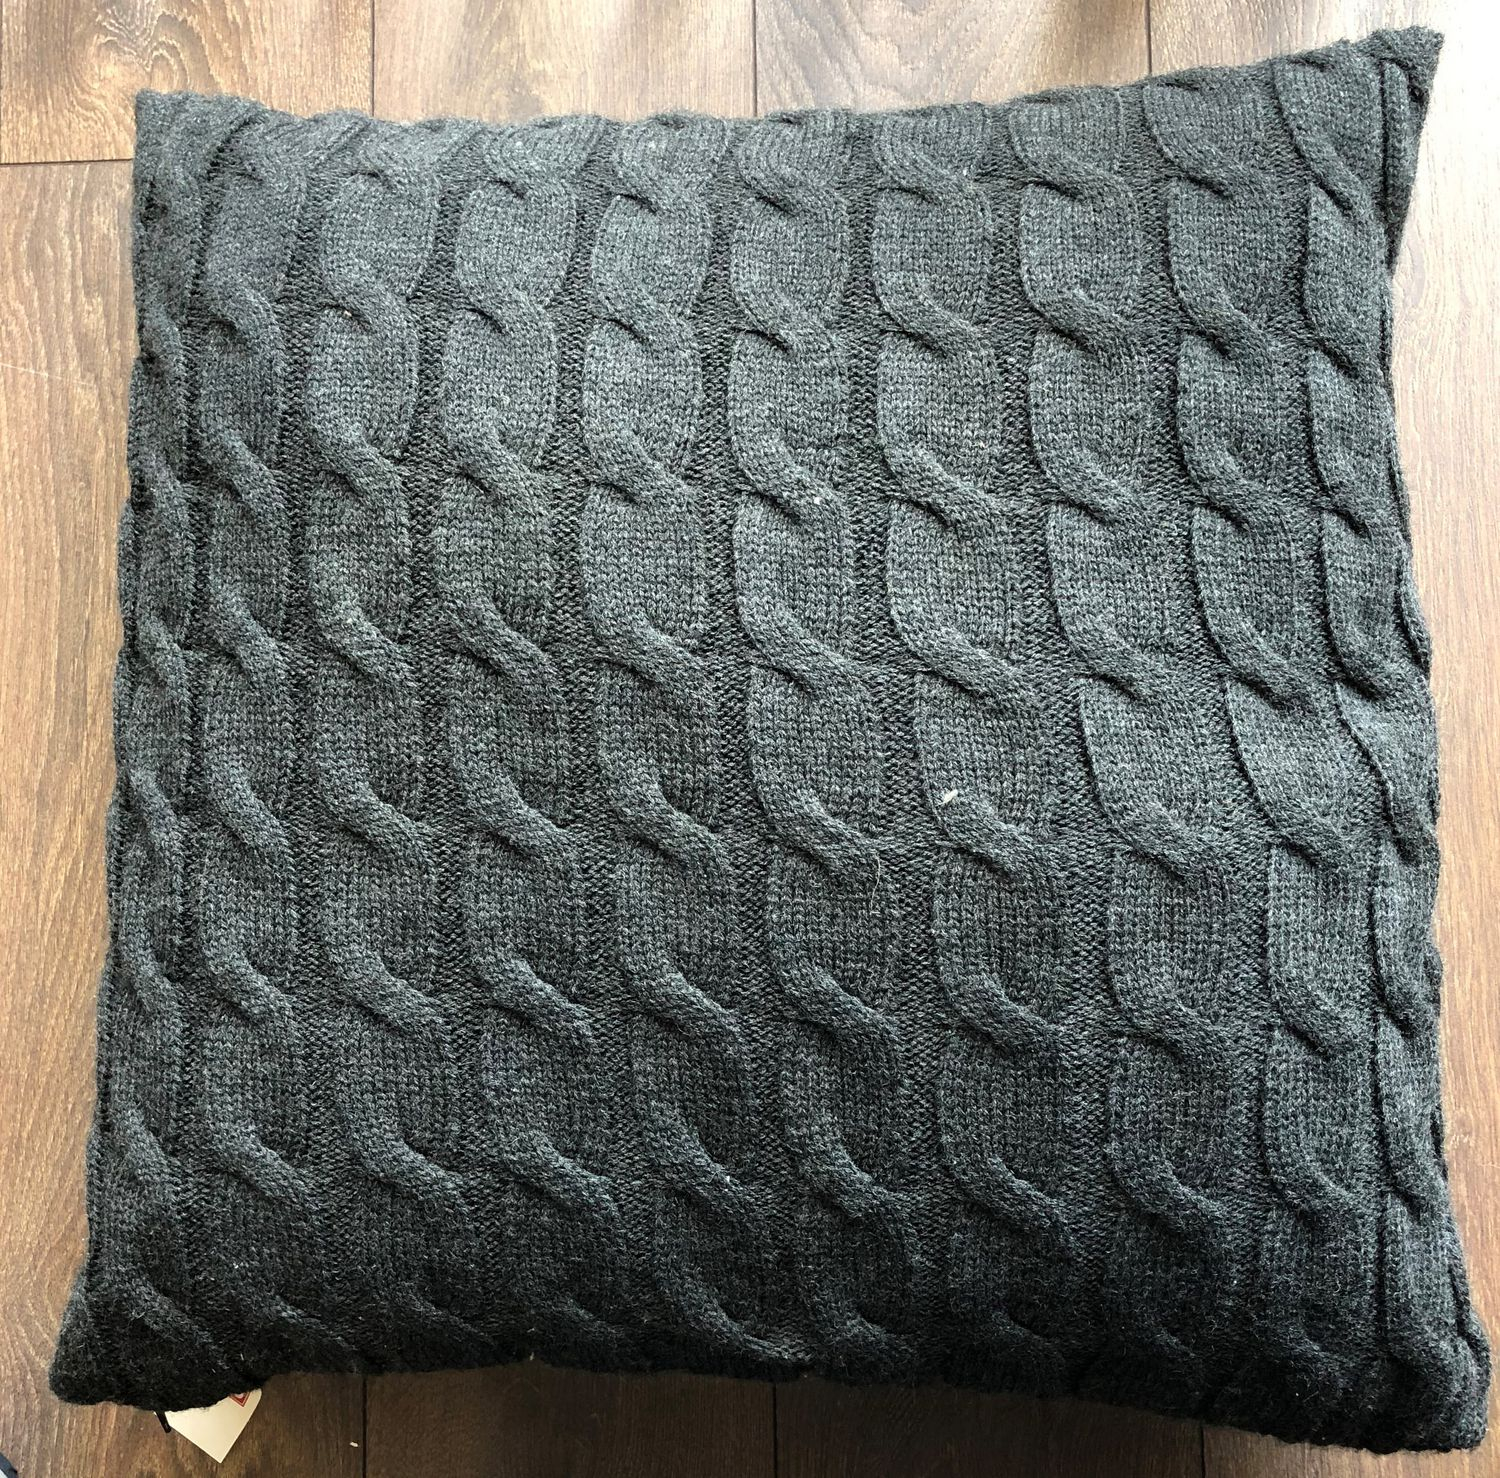 Knitting Pattern For Cushion Cover With Cables Fabstyles Cable Knit Grey Poly Filled Cushion Cover Walmart Canada